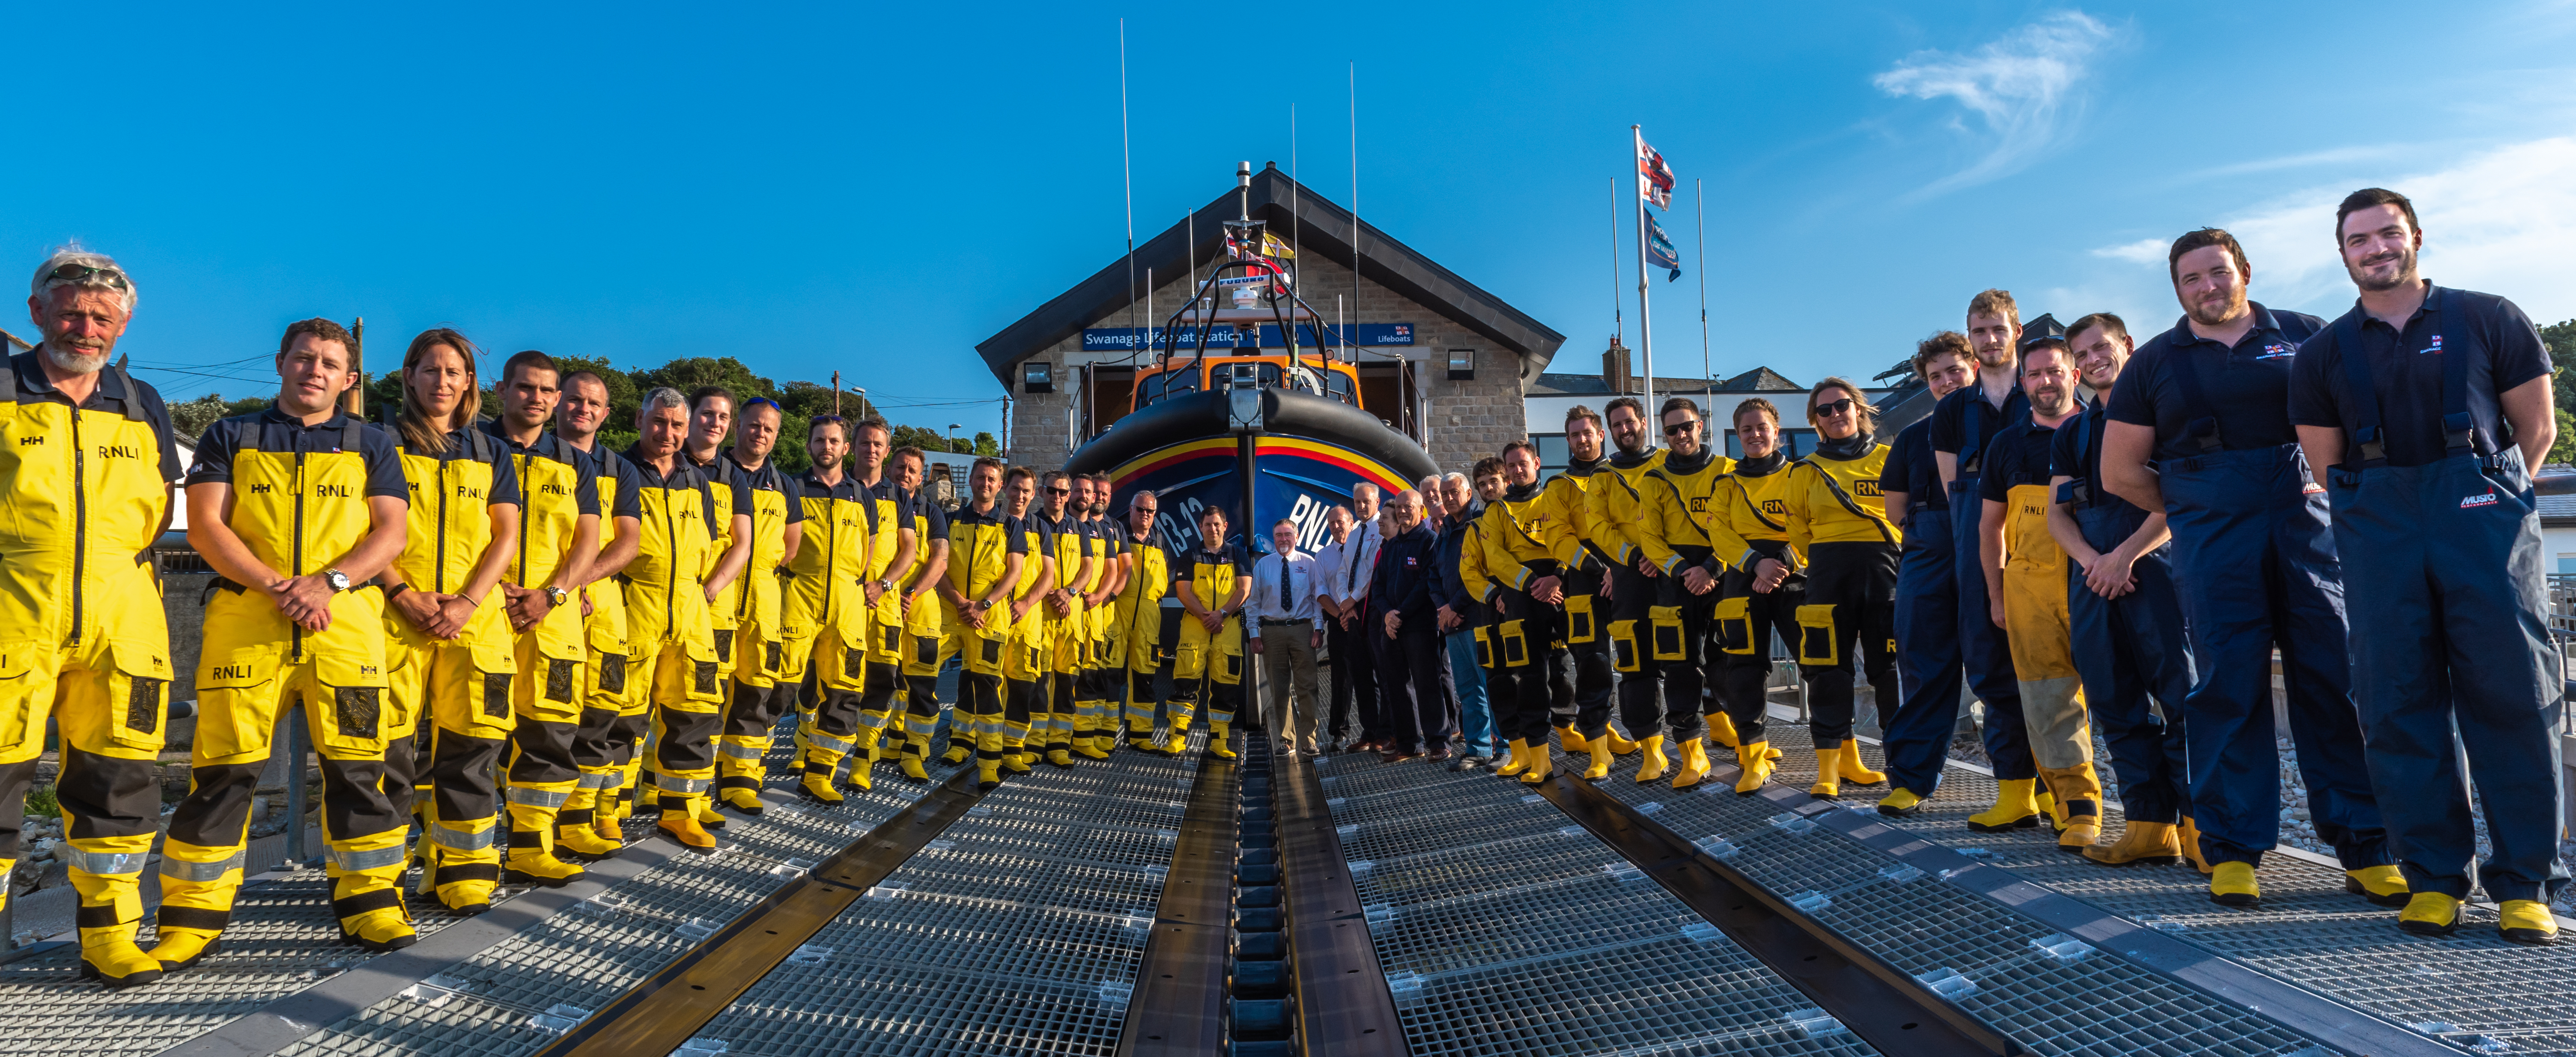 Swanage lifeboat crew on the slipway in front of the all-weather lifeboat, the George Thomas Lacy